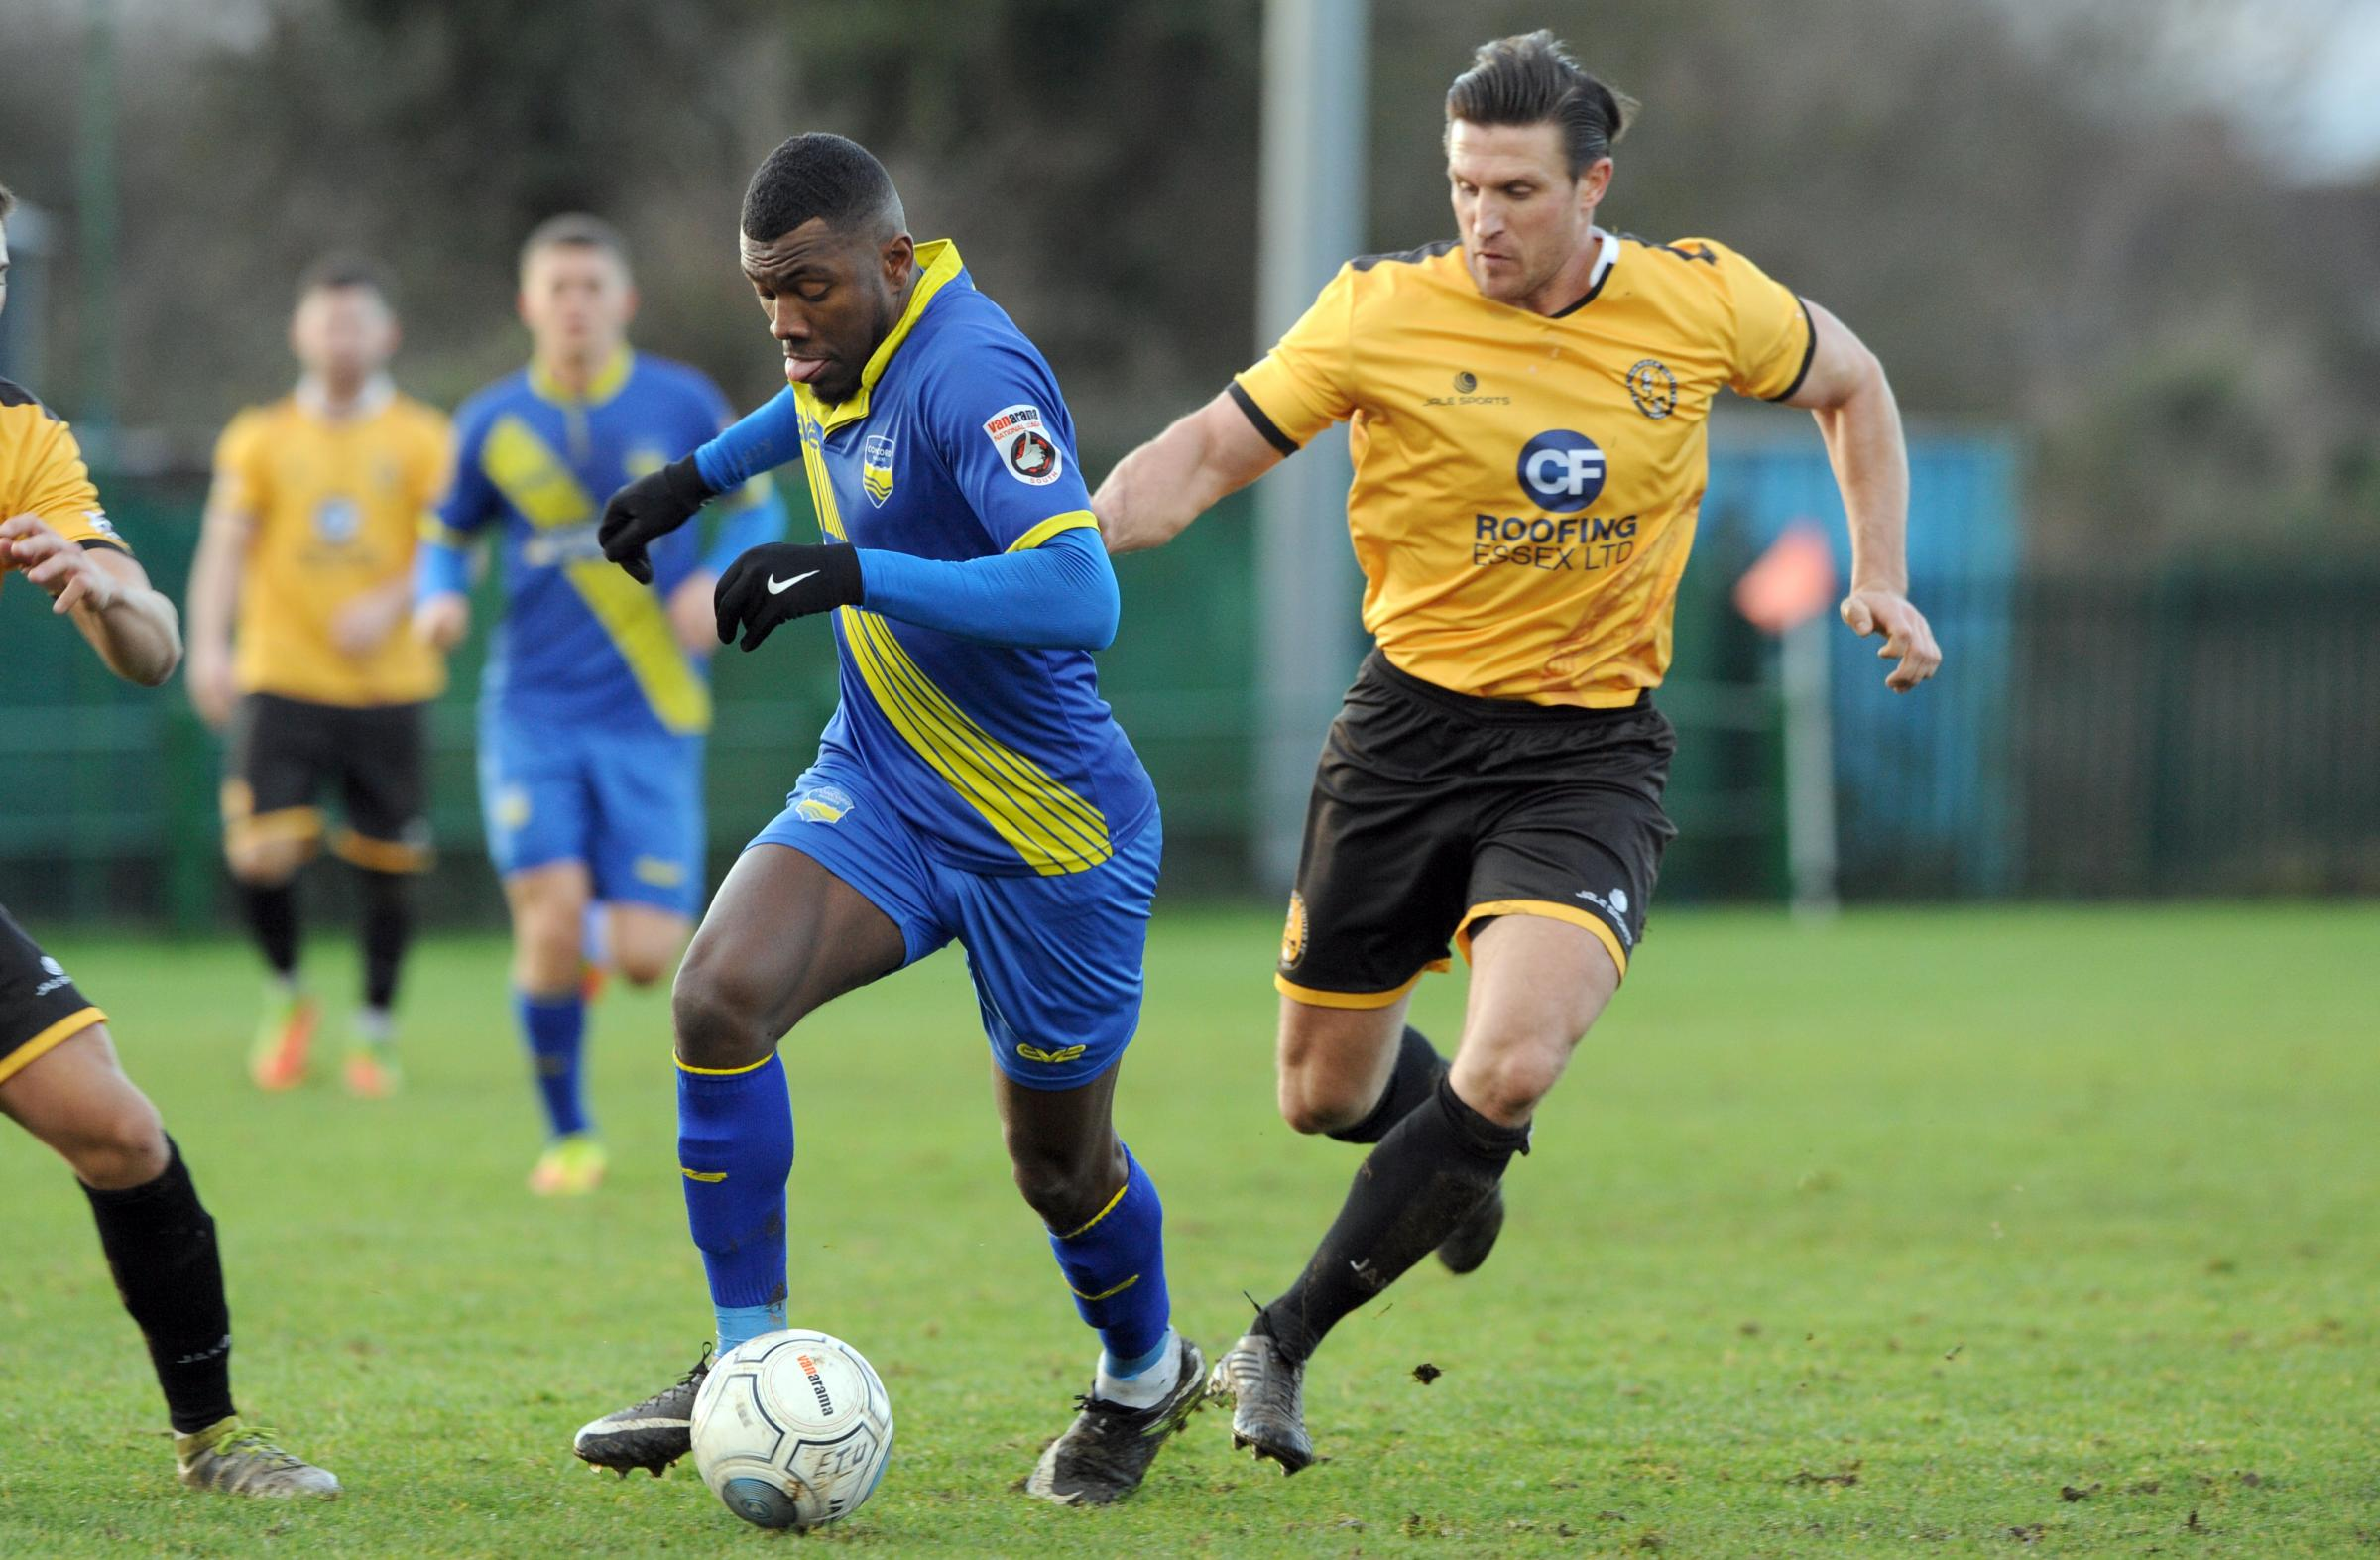 On the charge - Lee Burns closes down Concord Rangers' Femi Akinwande in a recent league match